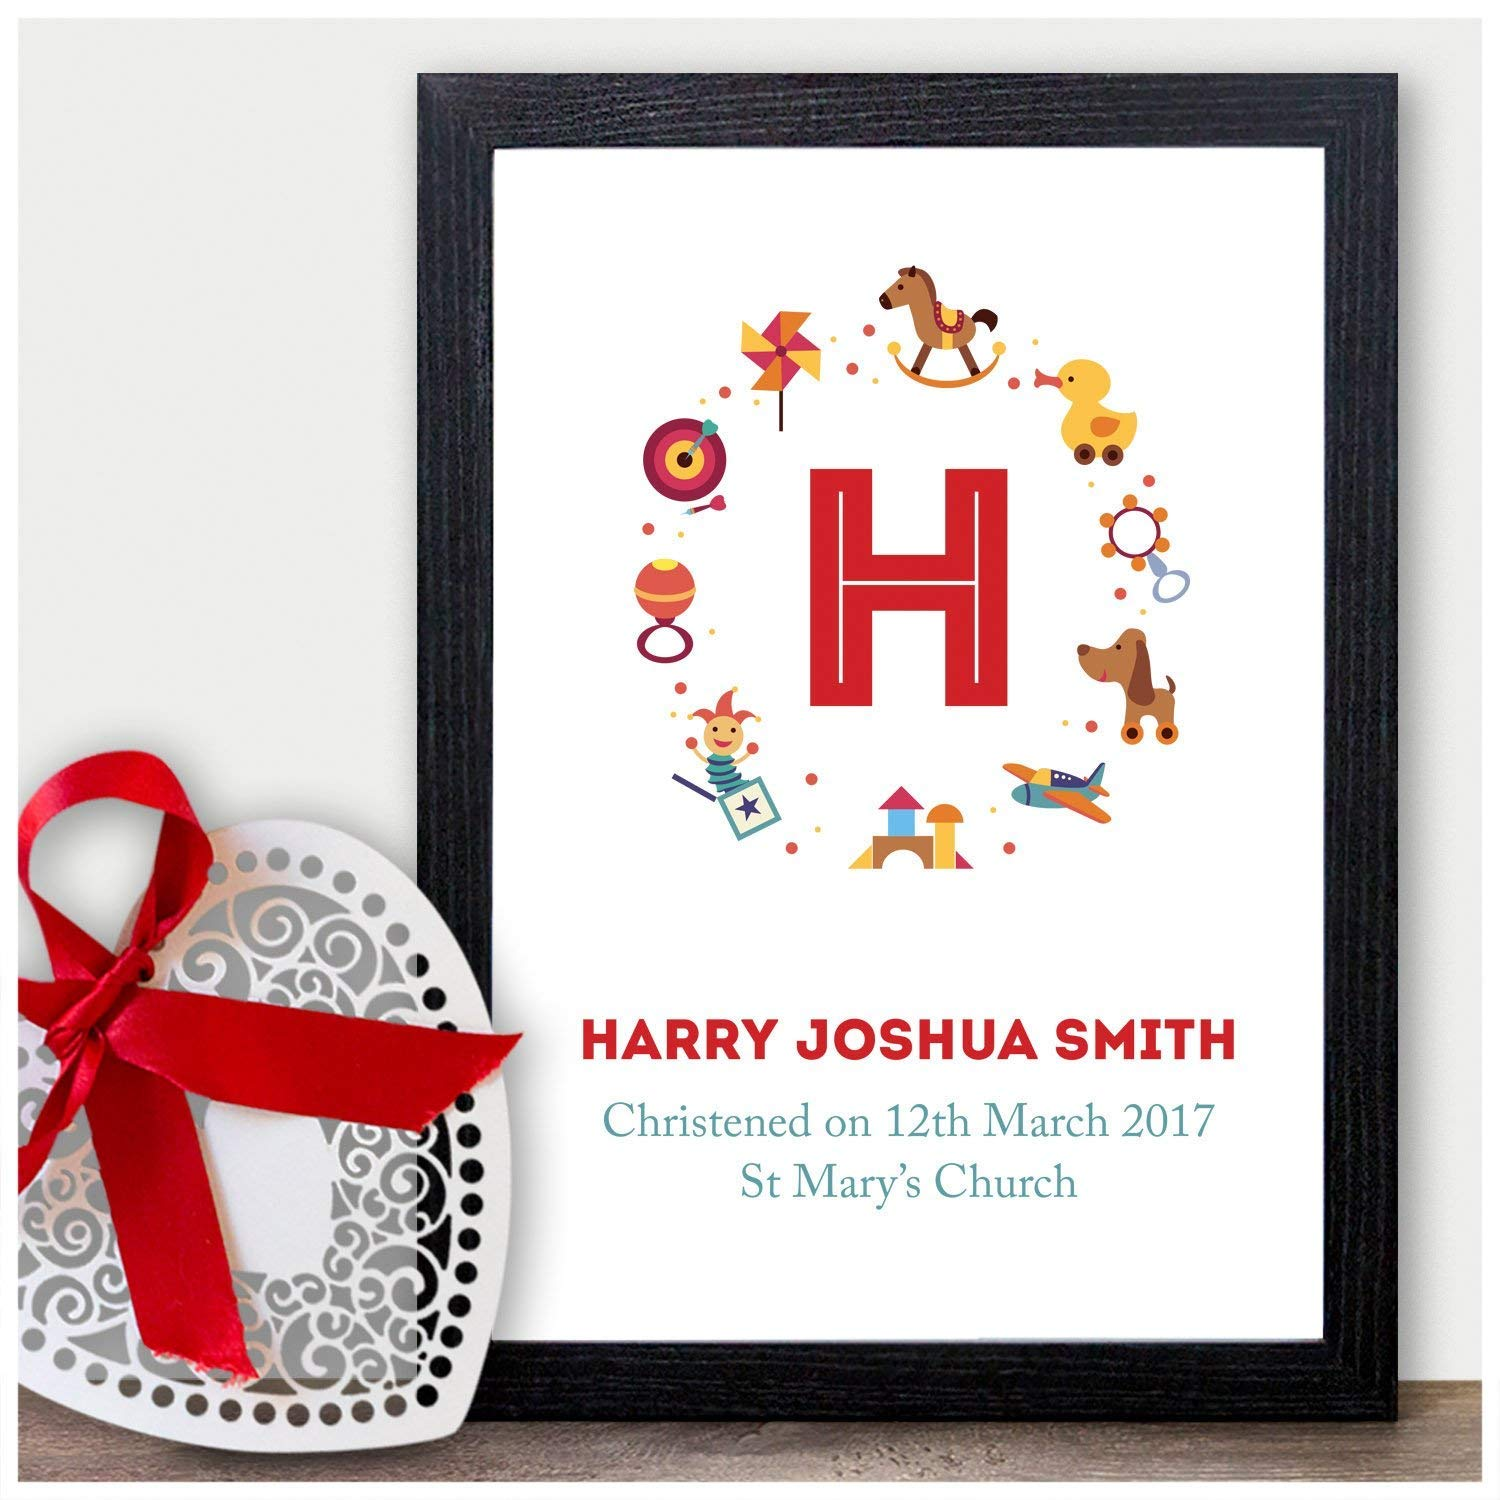 A3 Prints and Frames Wooden Blocks A5 Christening Baptism Naming Day Gifts for Baby Boys Girls Personalised Godchild Grandchild Gifts A4 Handmade Custom Christening Gifts for Baby Girls Boys